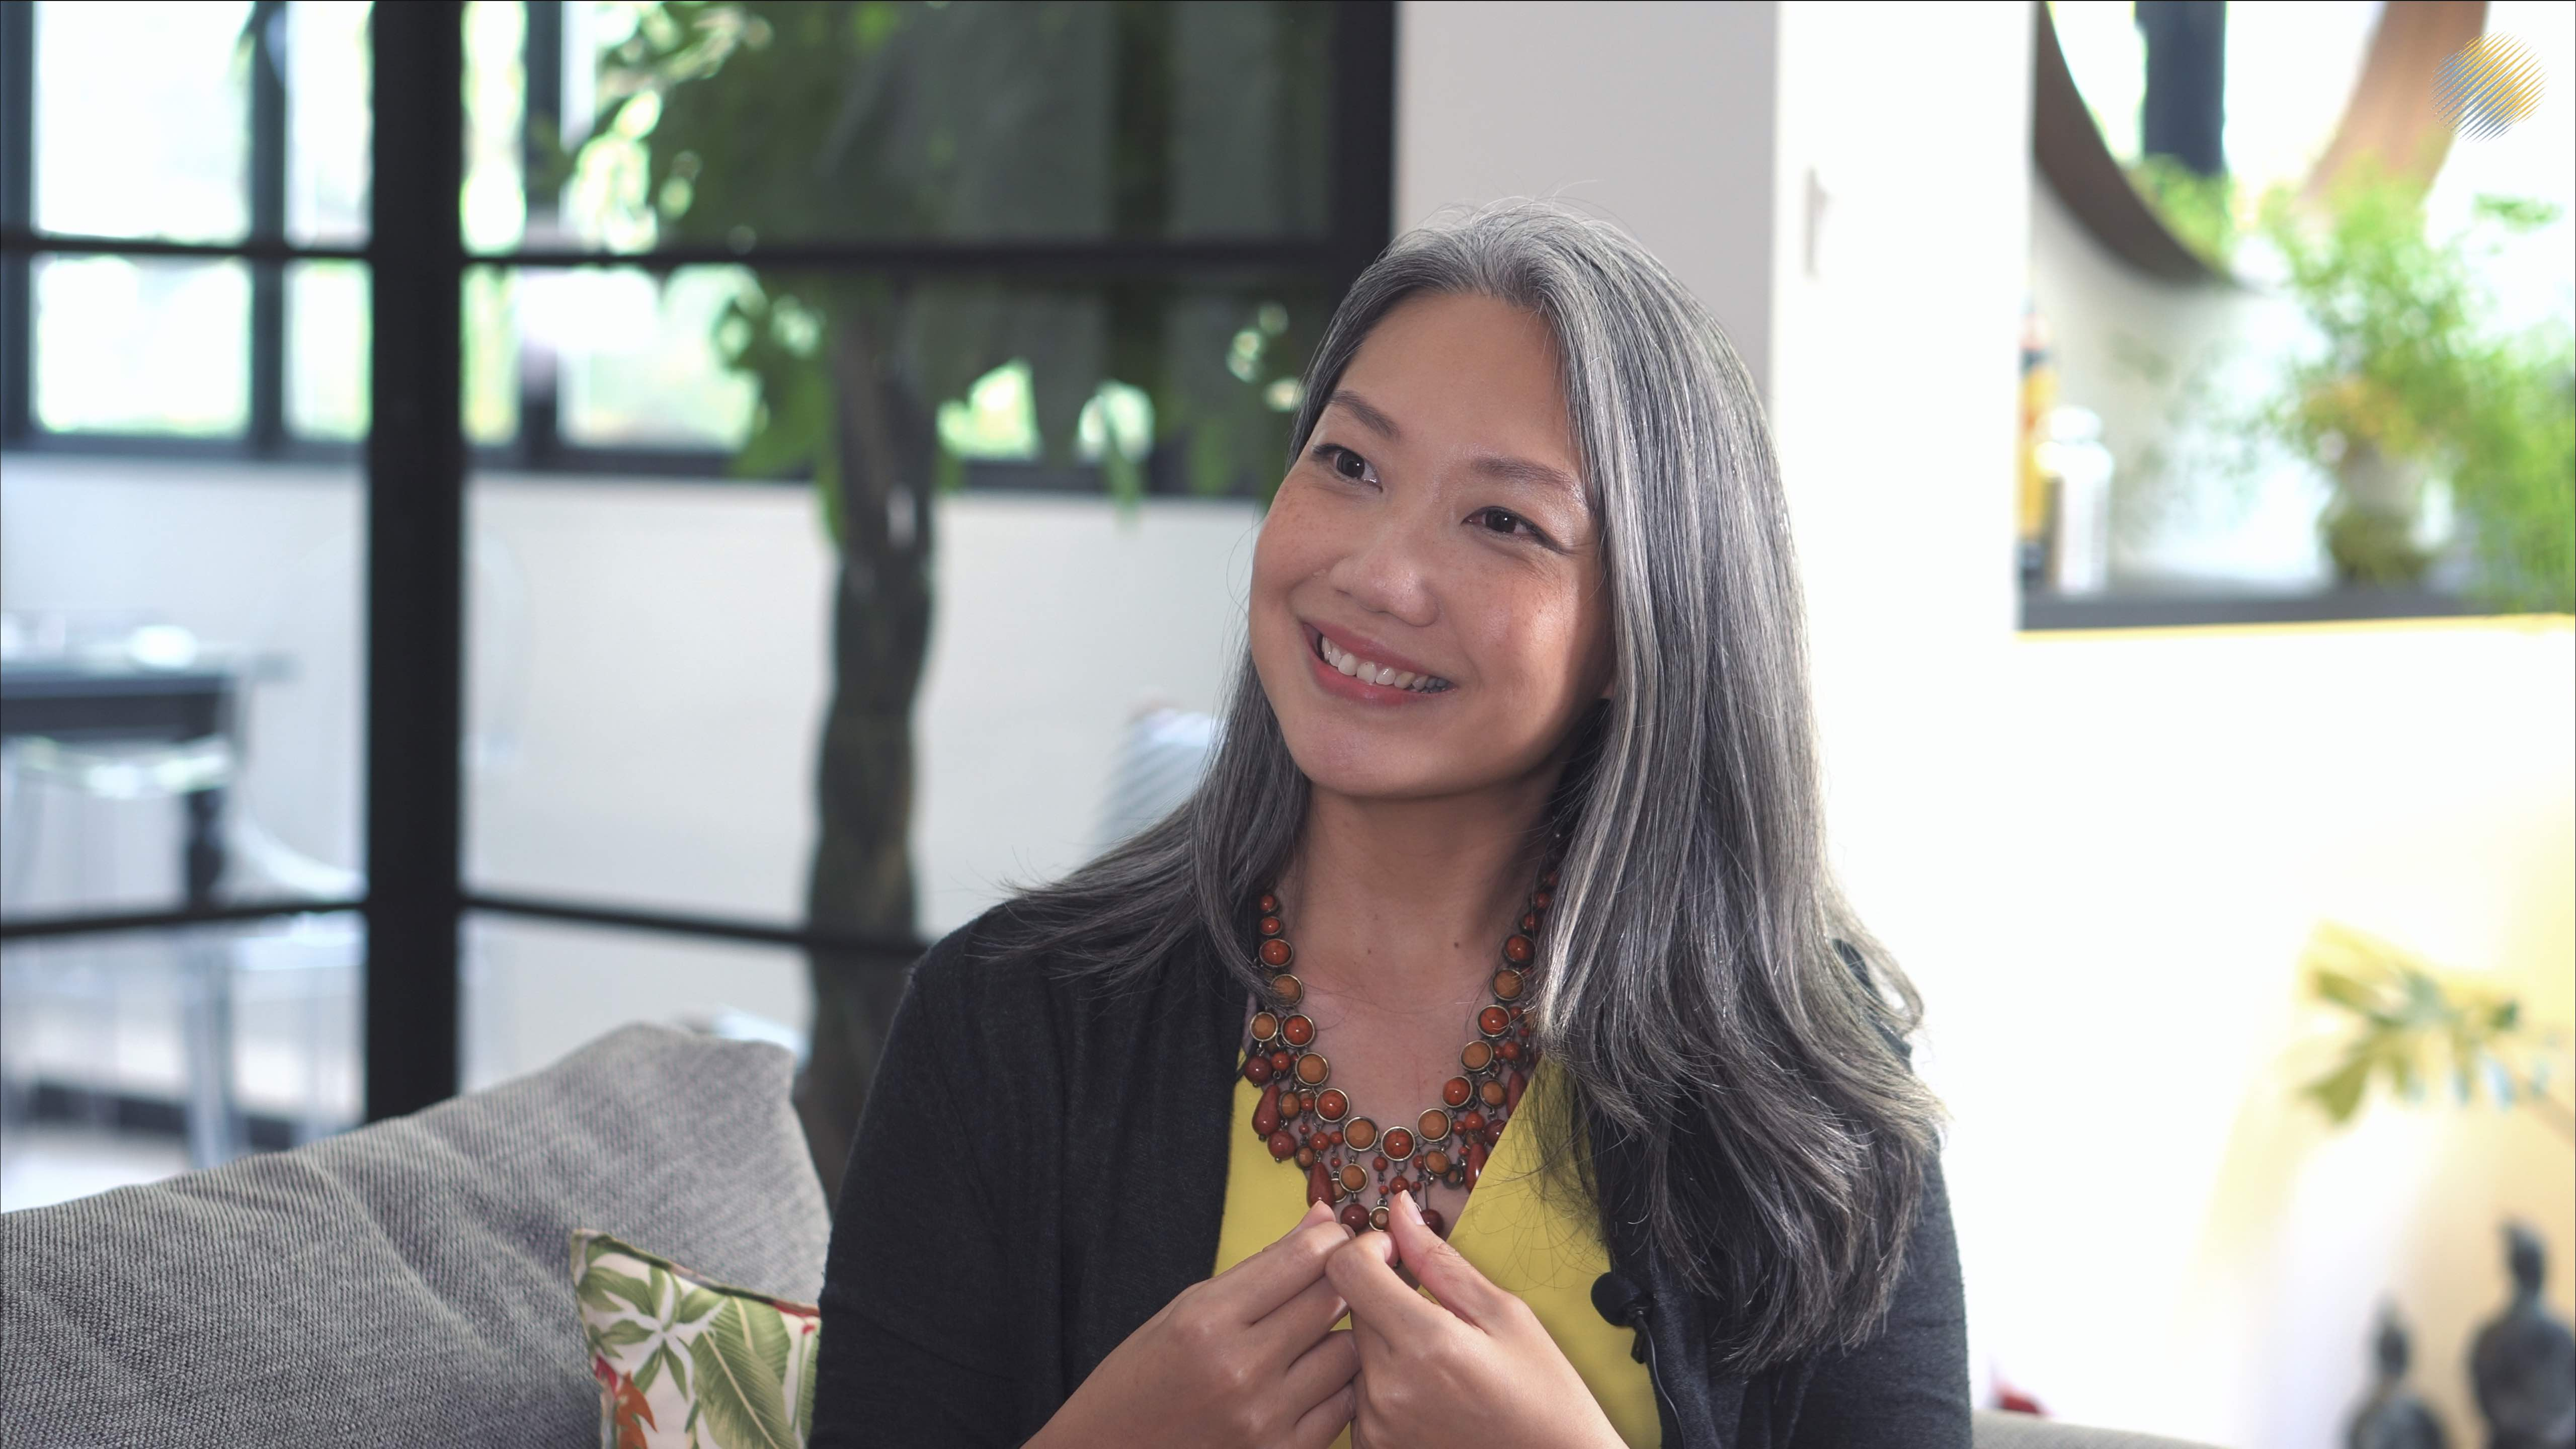 Member of Parliament, Carrie Tan, named patron of the SHE BRILLIANCE movement